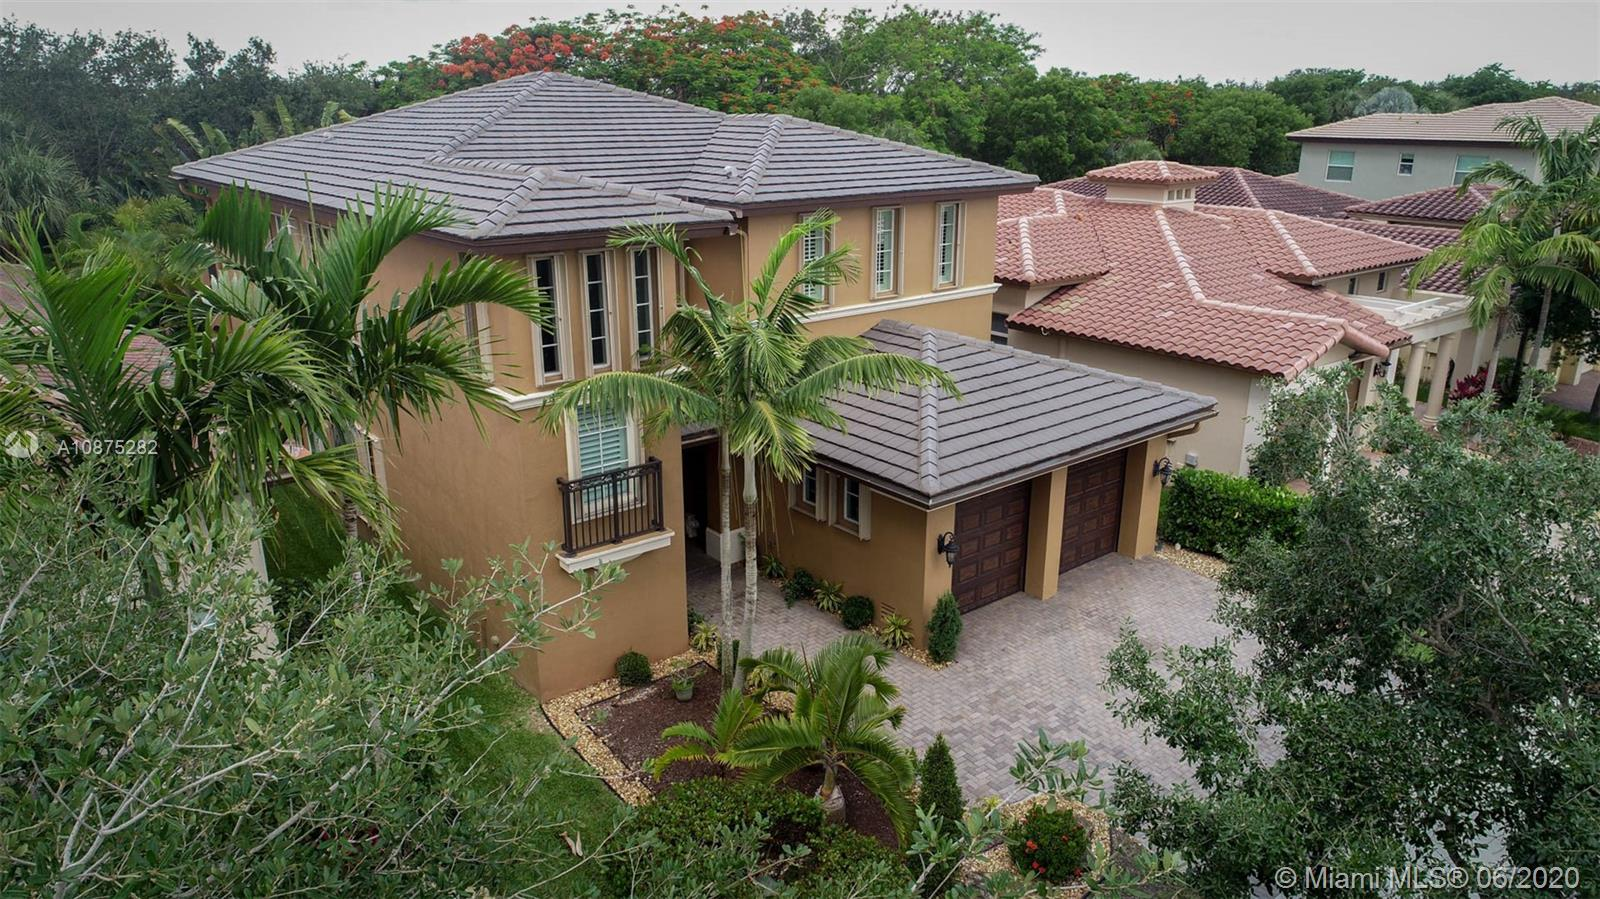 12540 NW 79th Mnr #12540 For Sale A10875282, FL